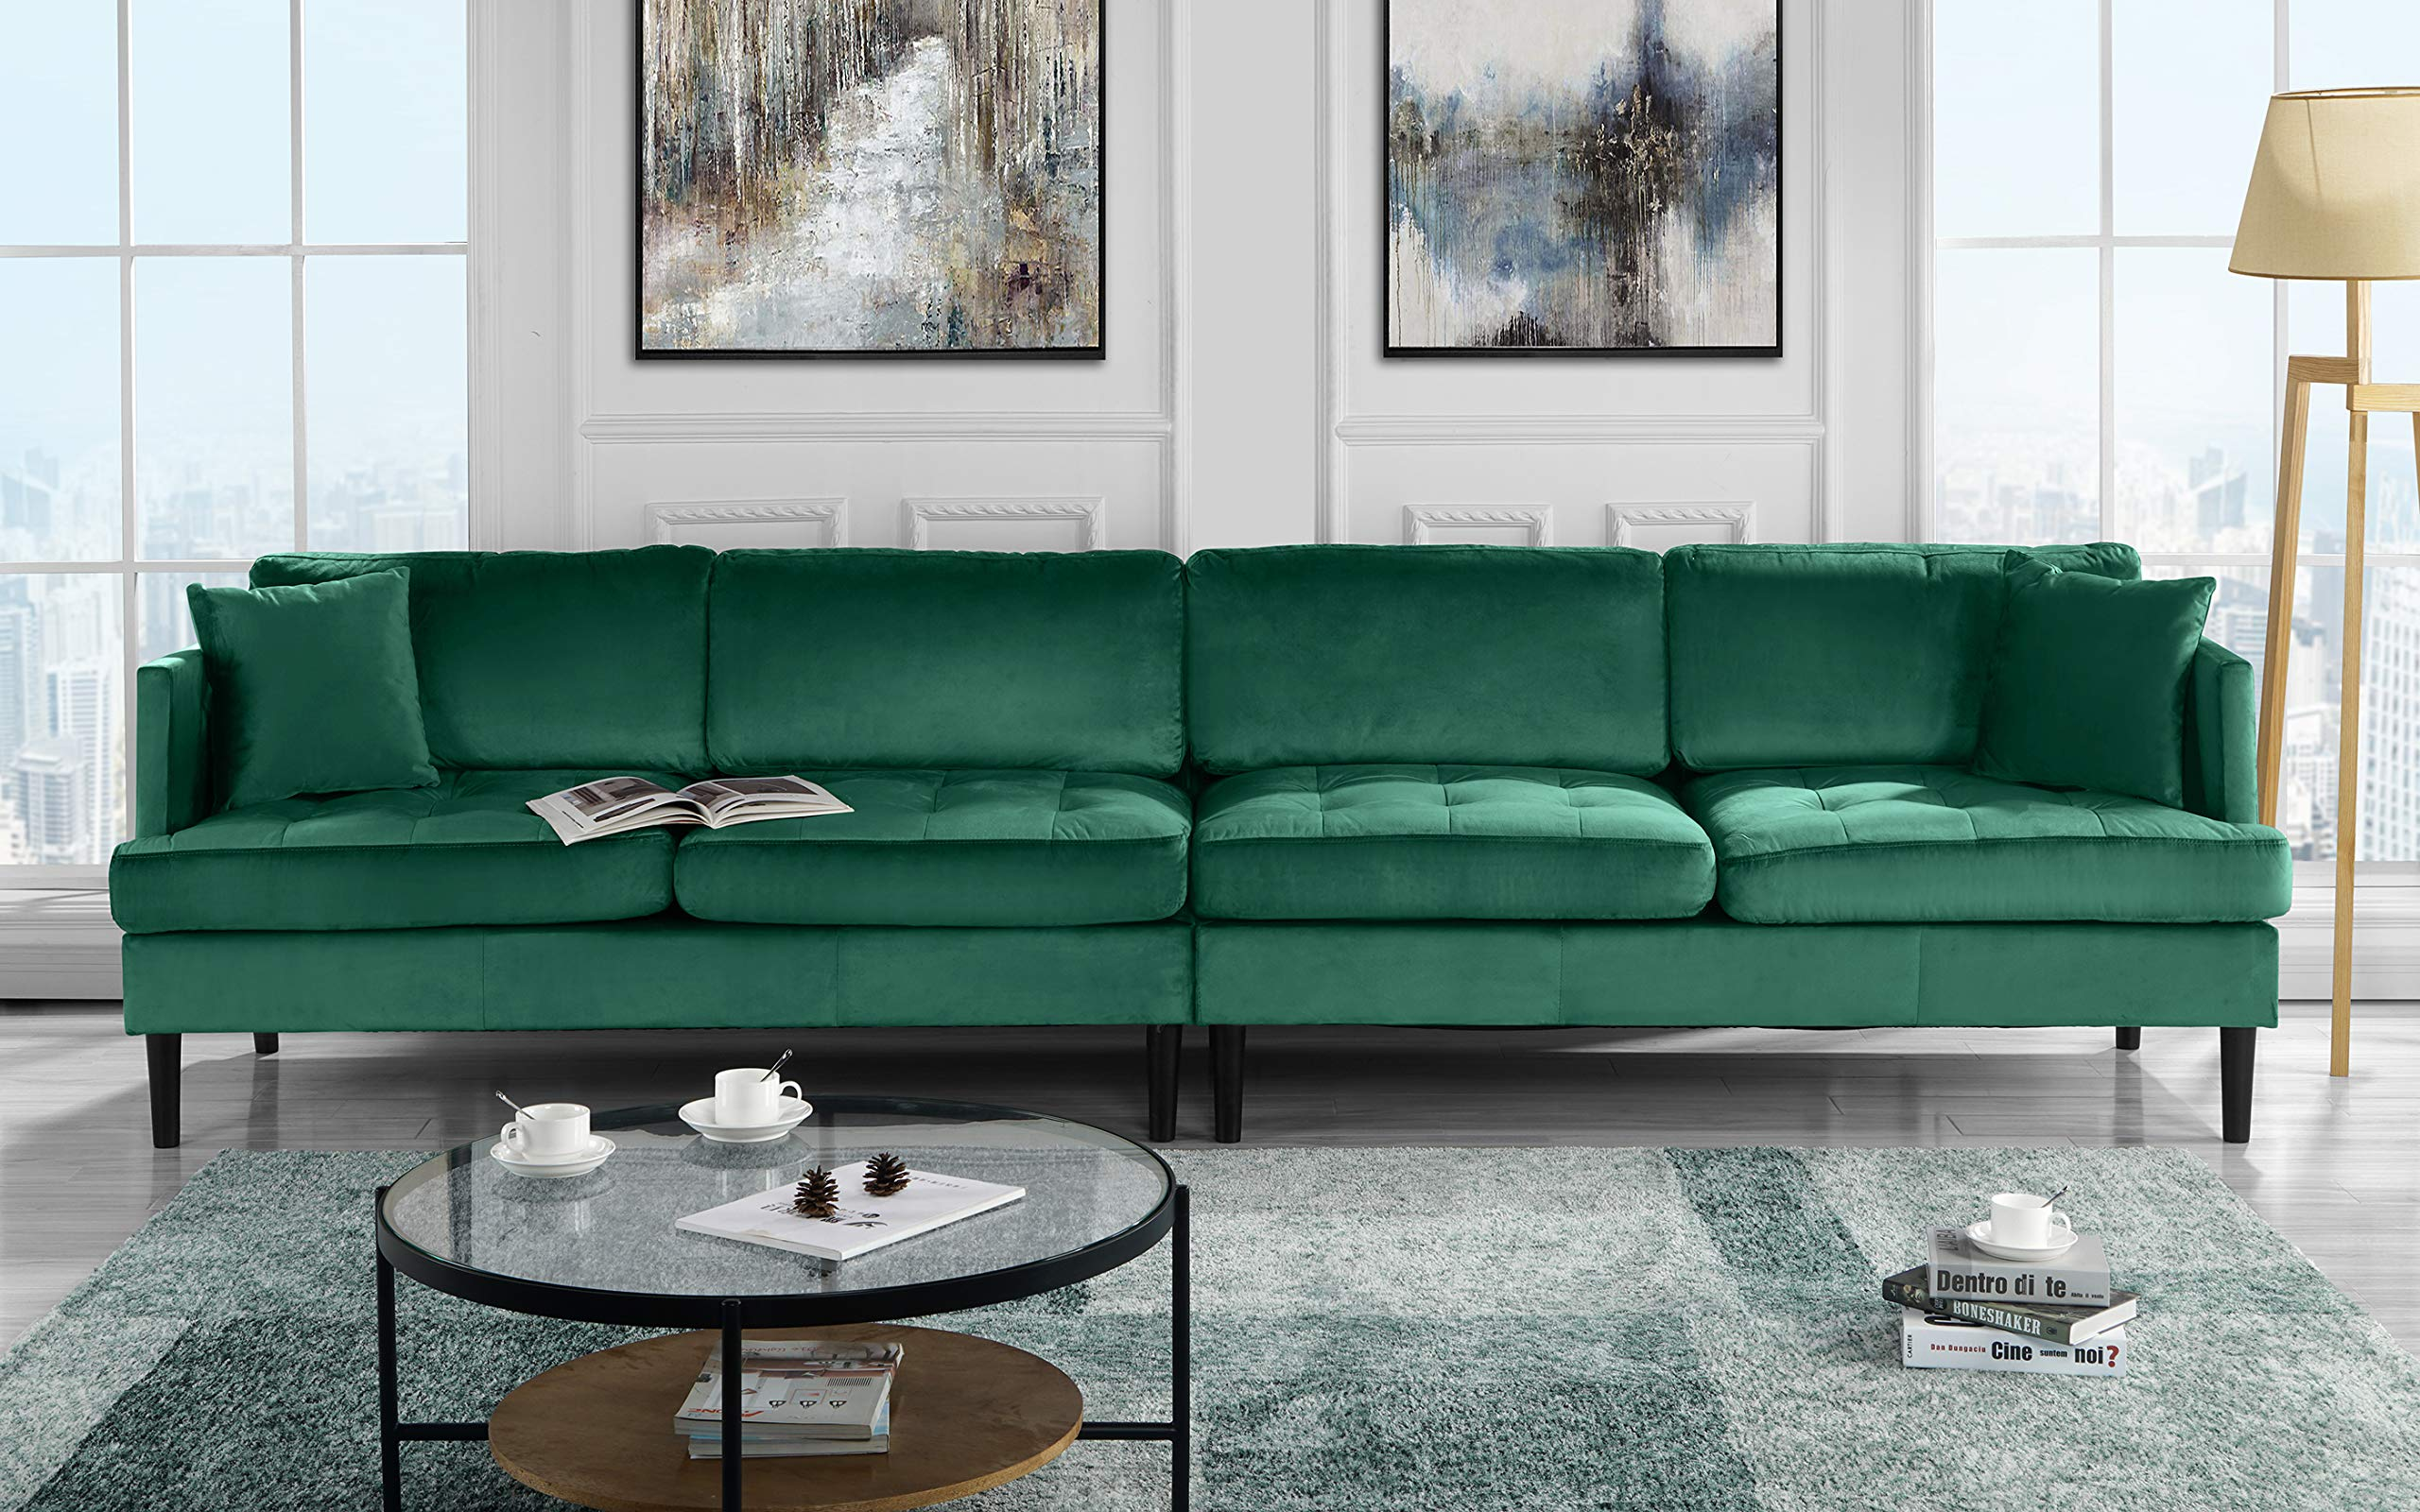 Mid Century Modern Extra Large Velvet Sofa, Living Room Couch (Green) by Casa Andrea Milano